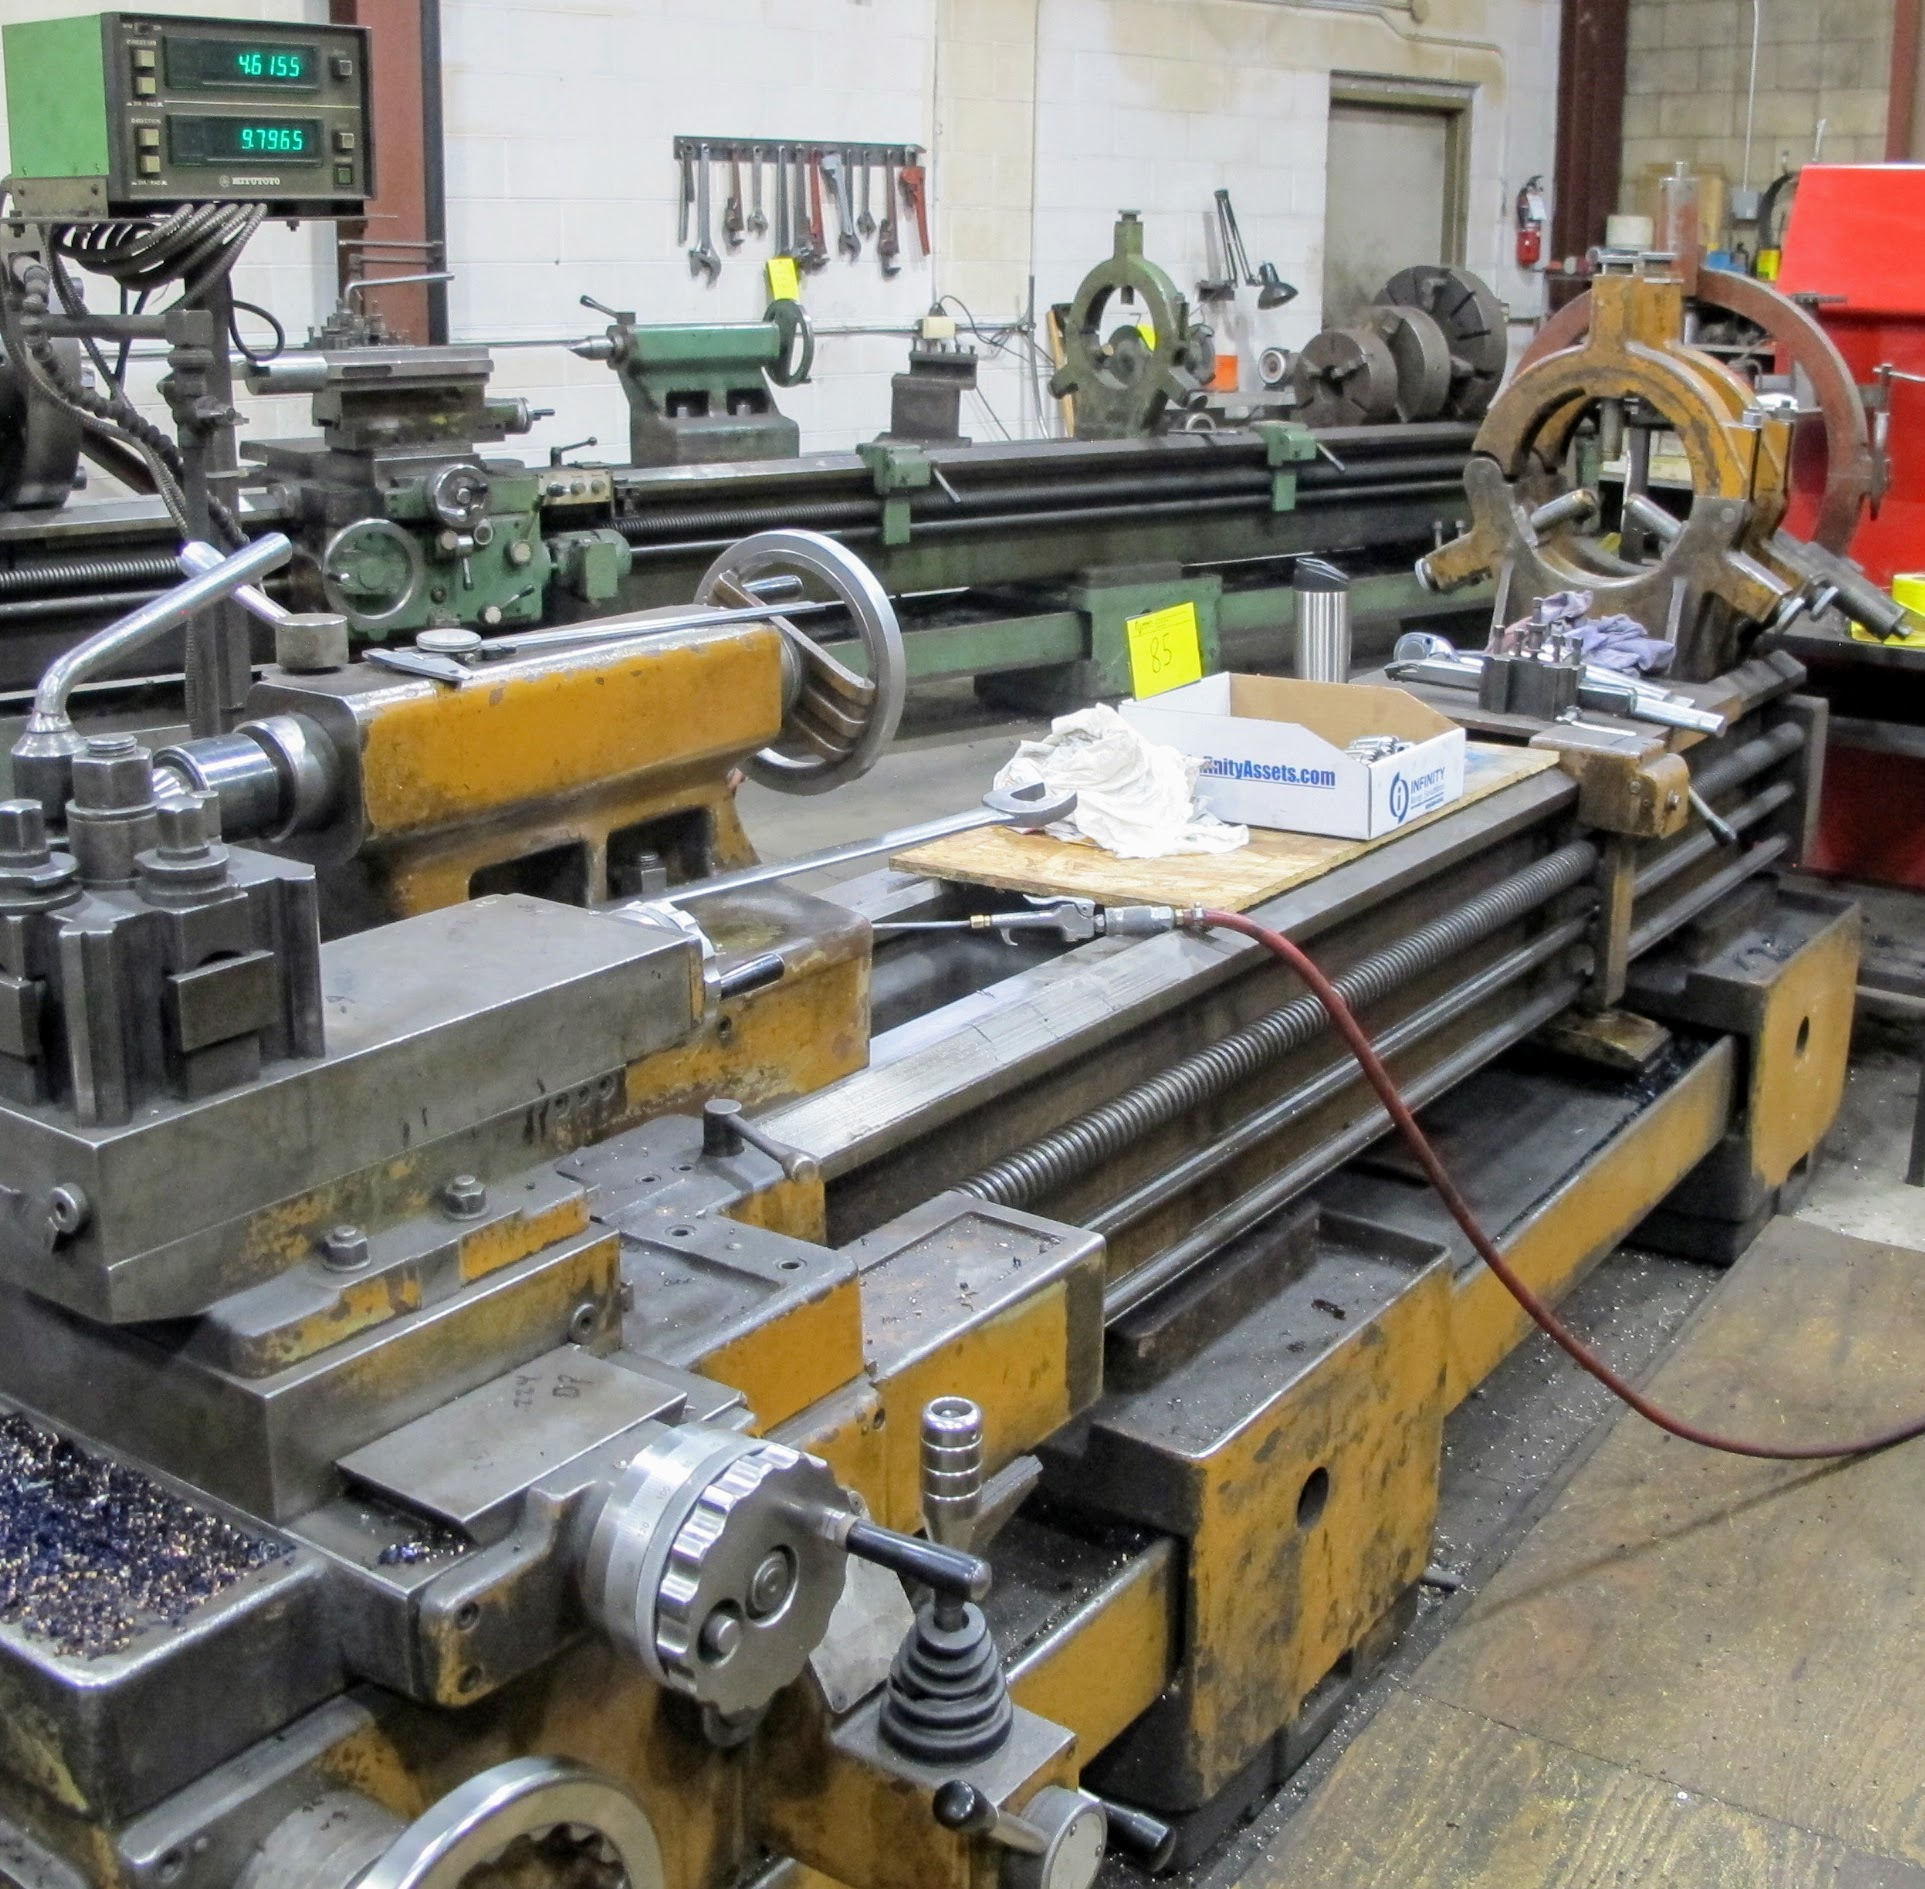 """PBR TM-30 LATHE, 2-AXIS DRO, 12"""" 3-JAW CHUCK, 12' BED, 15 - 1,500 RPM, QUICK CHANGE TOOL HOLDER, - Image 4 of 6"""